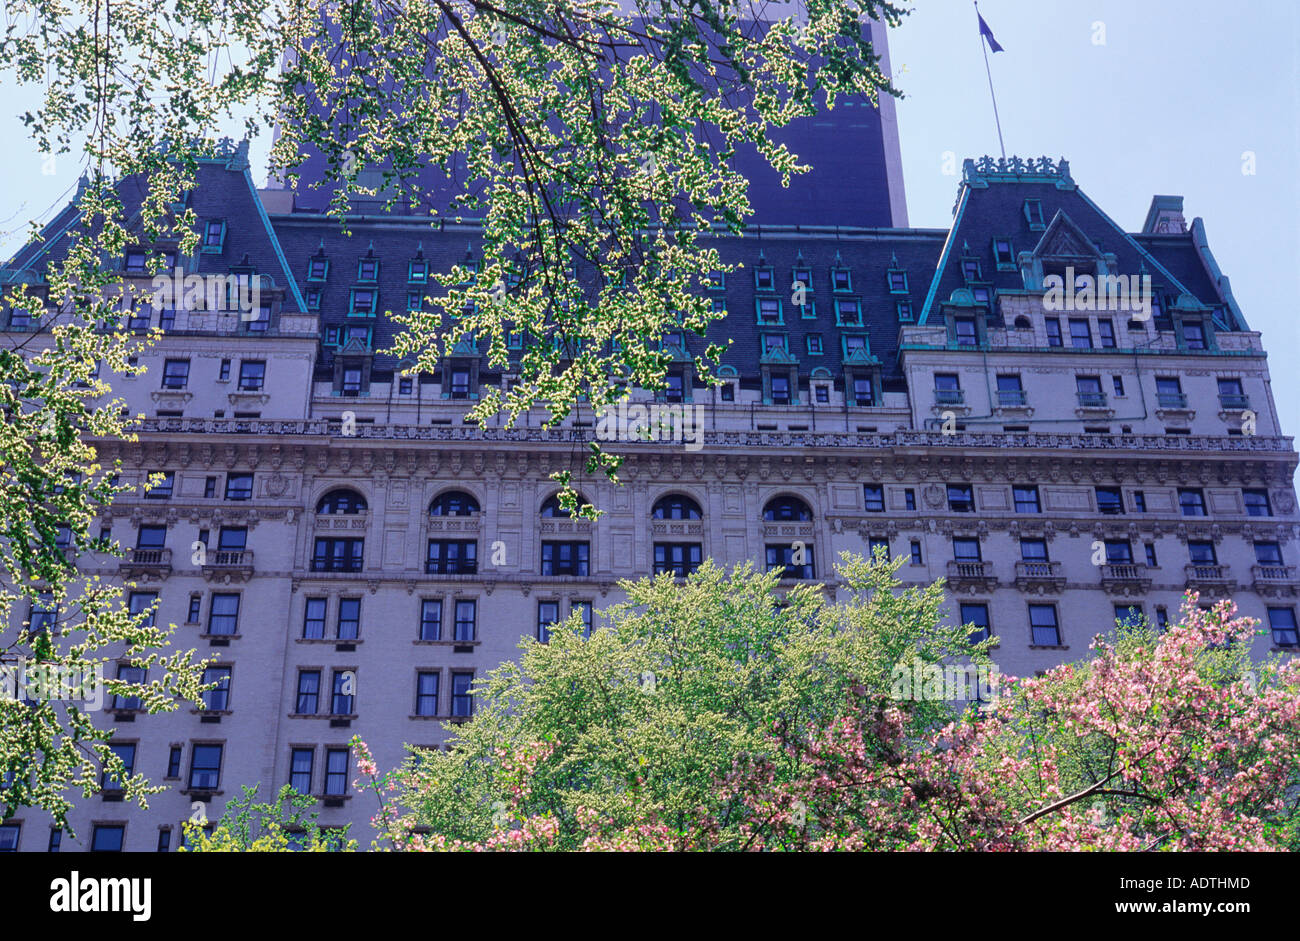 new york city the plaza hotel seen from central park spring nyc stock photo royalty free image. Black Bedroom Furniture Sets. Home Design Ideas